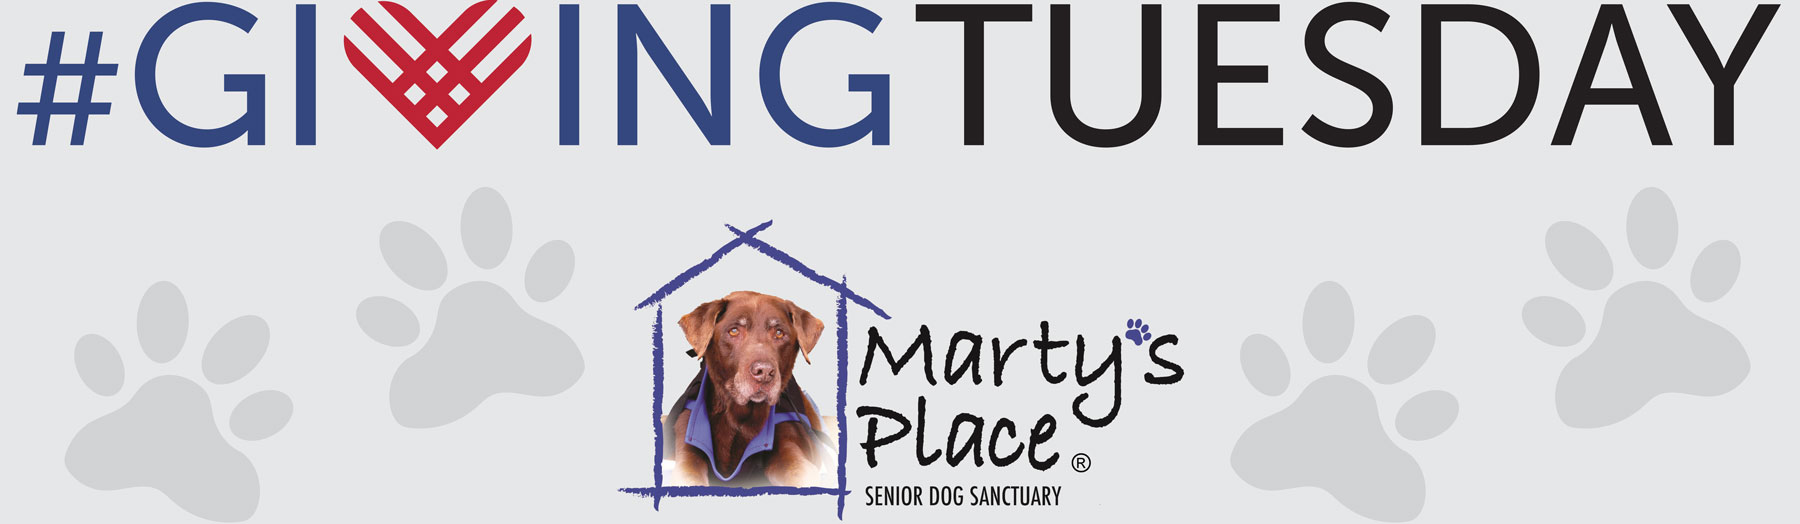 Marty's Place Giving Tuesday